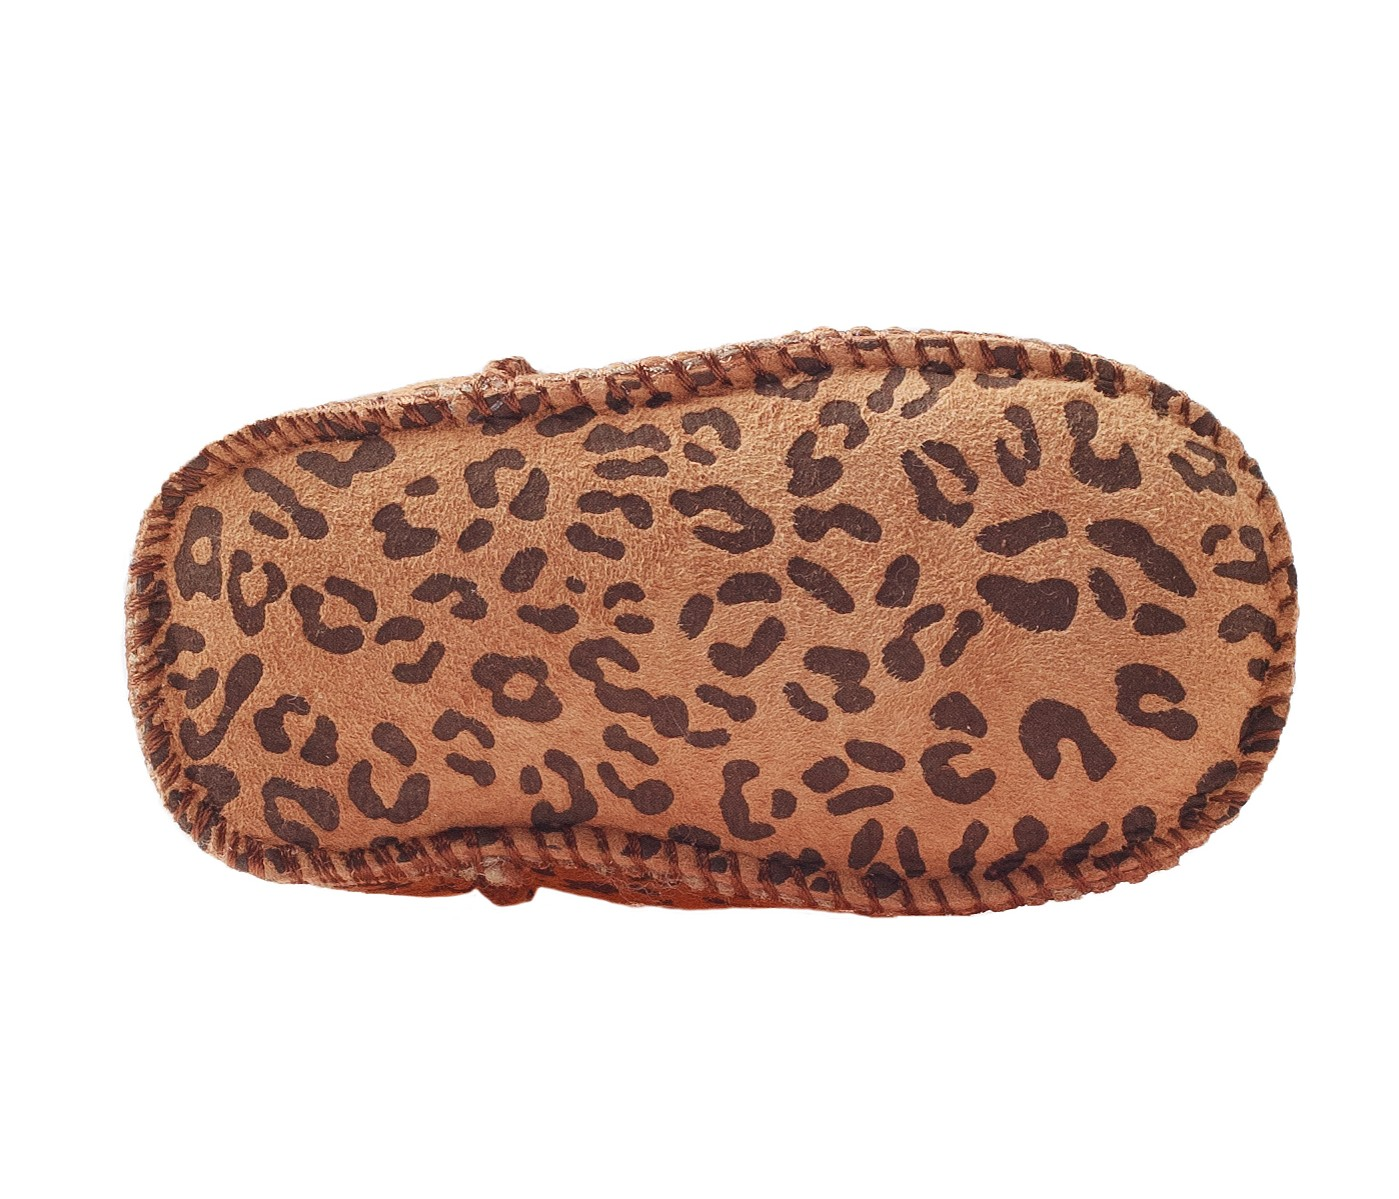 uggs leopard